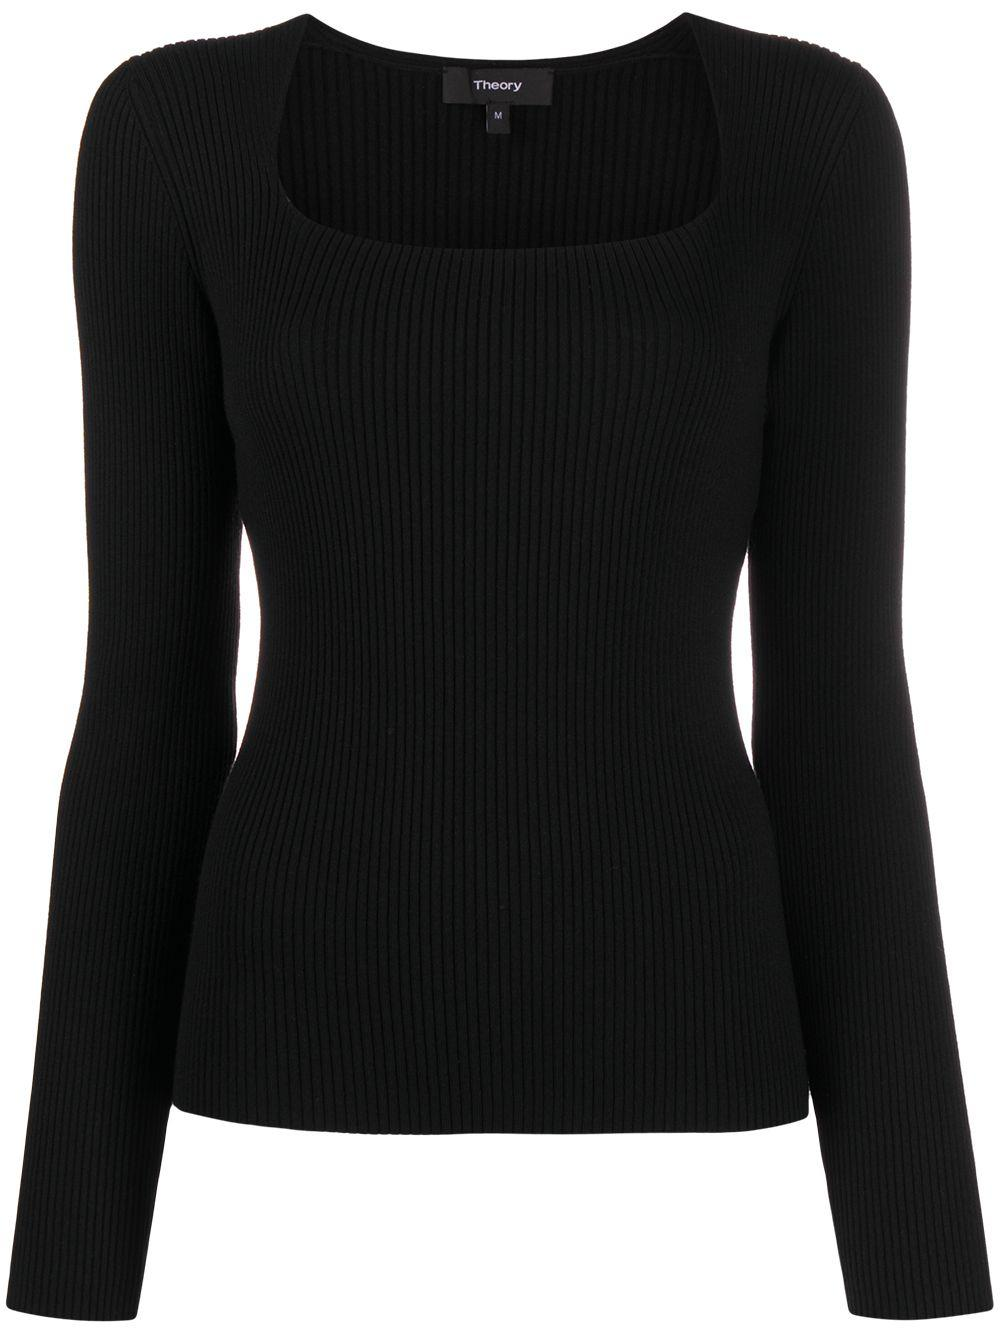 Evian Portrait Neck Knit Top